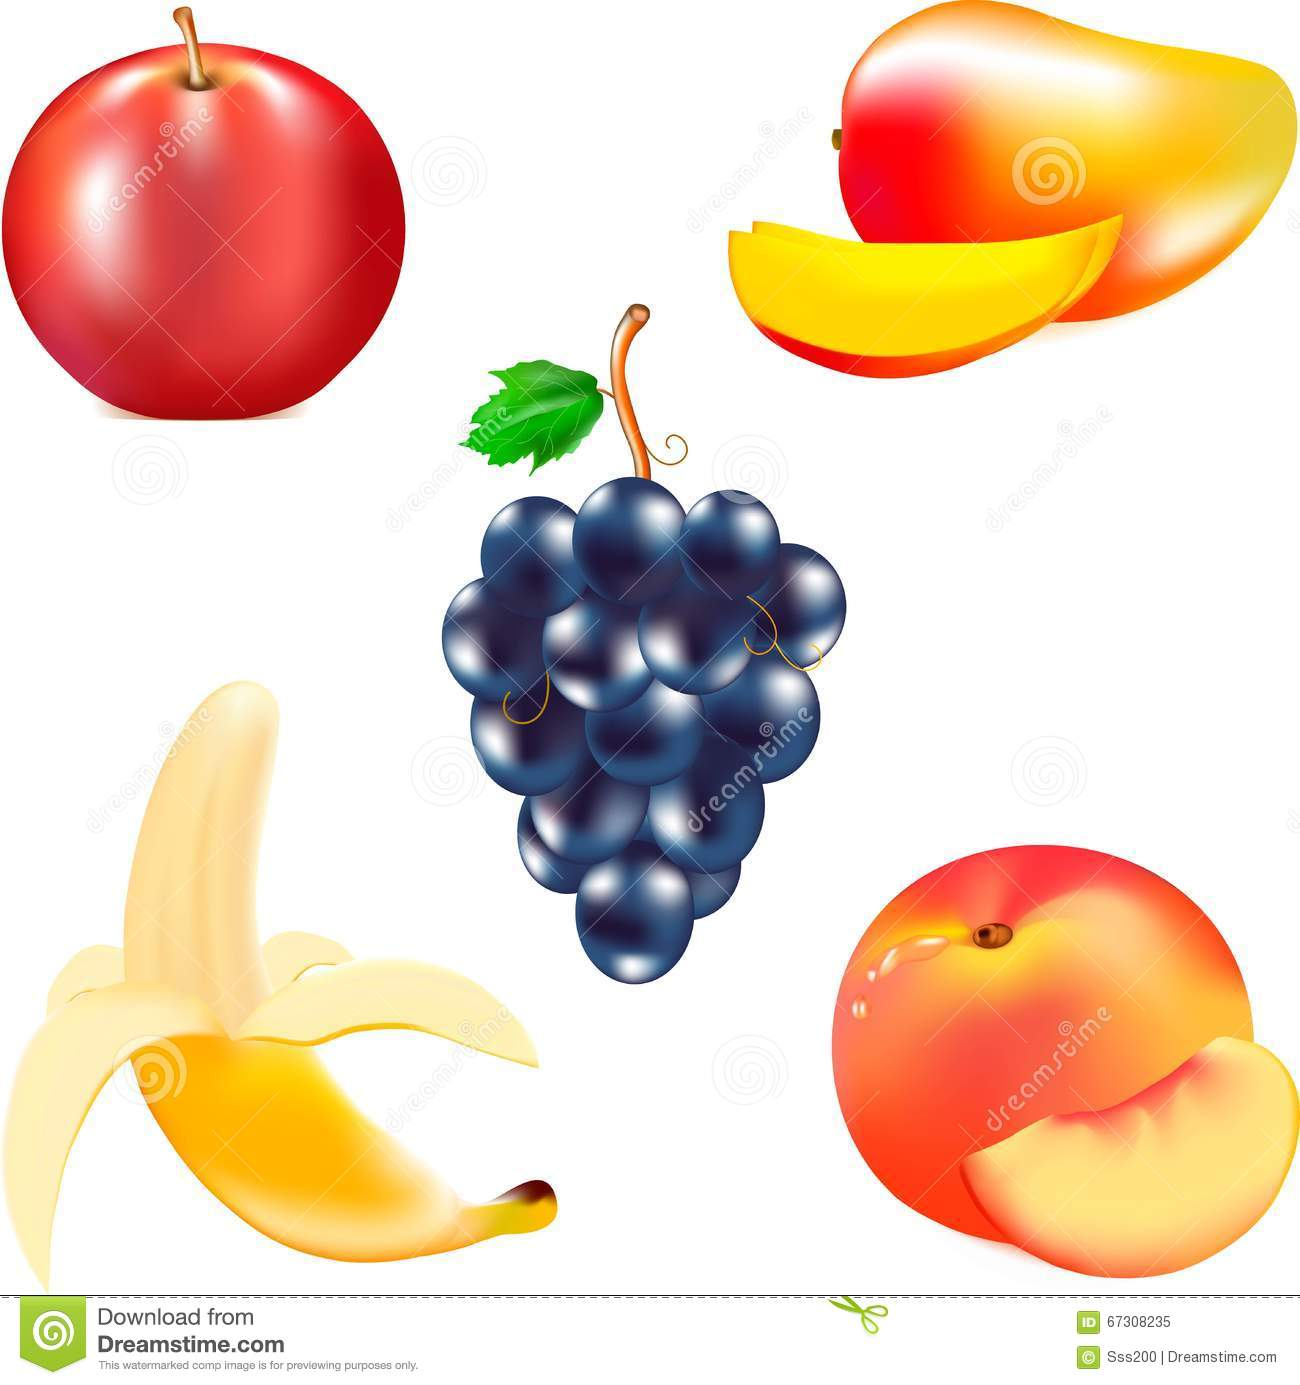 Fruit For Food, Mature Banana, Tasty Mango, Juicy Fruit, Red Apple.